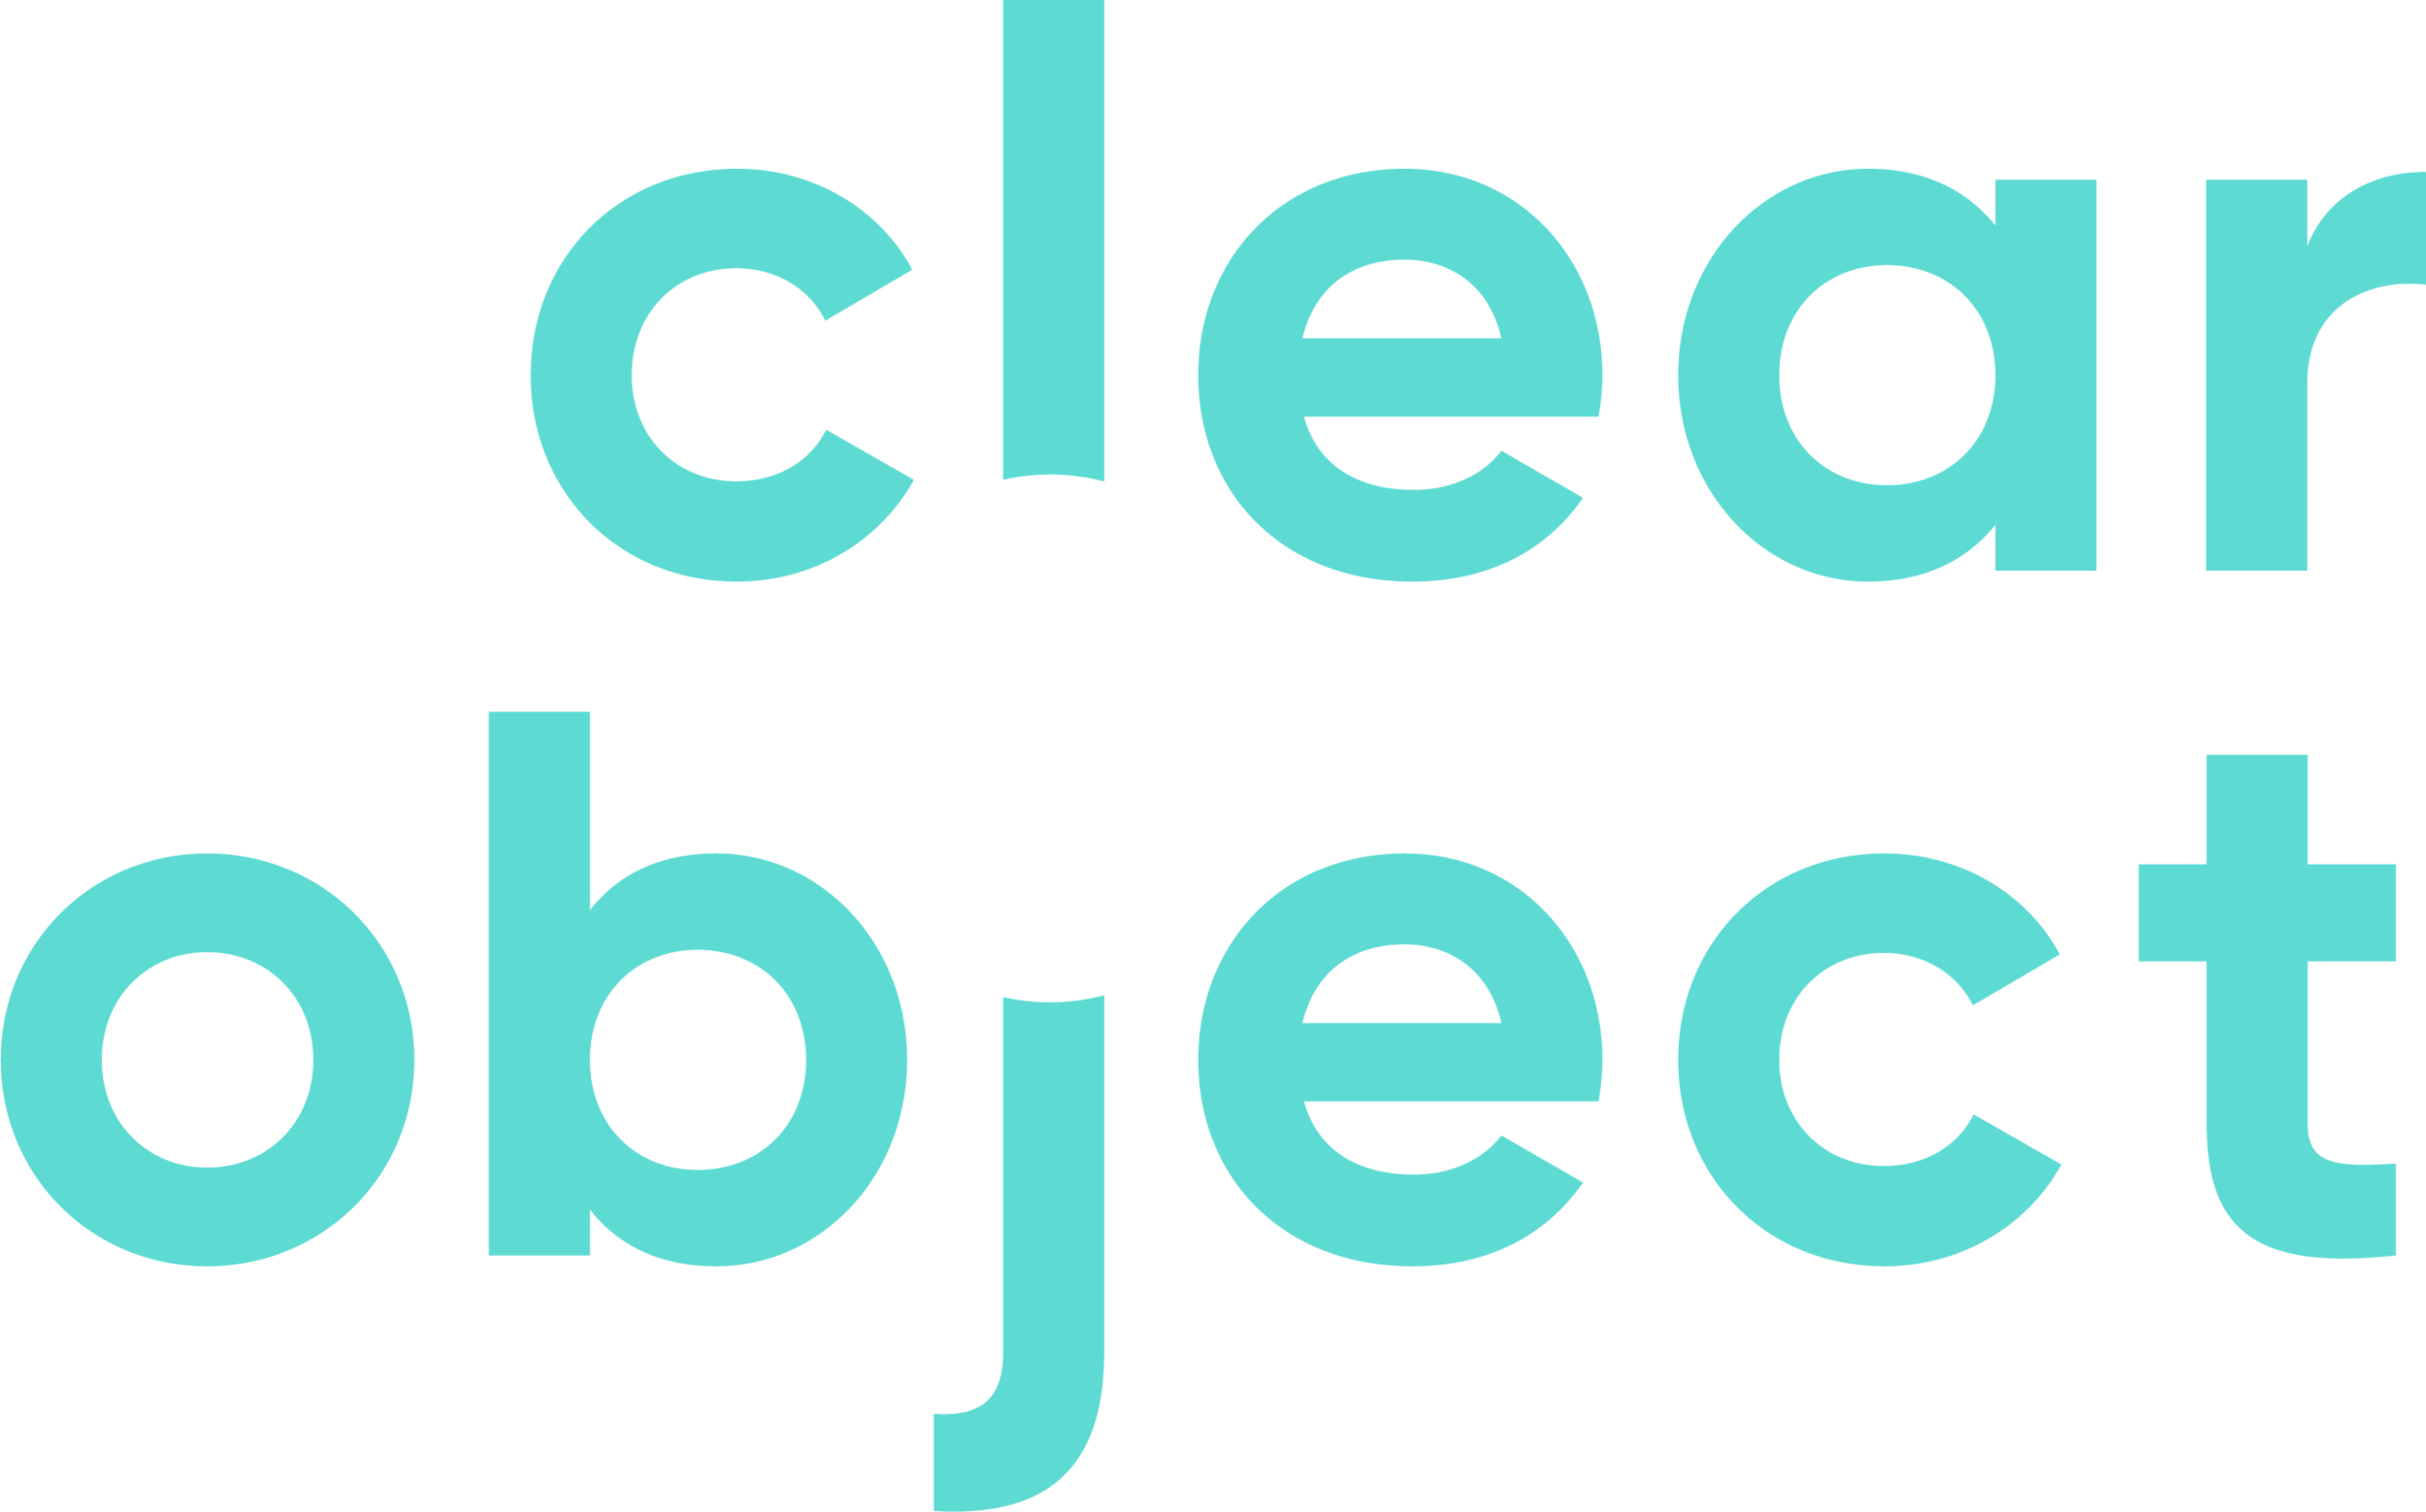 clearobject.png